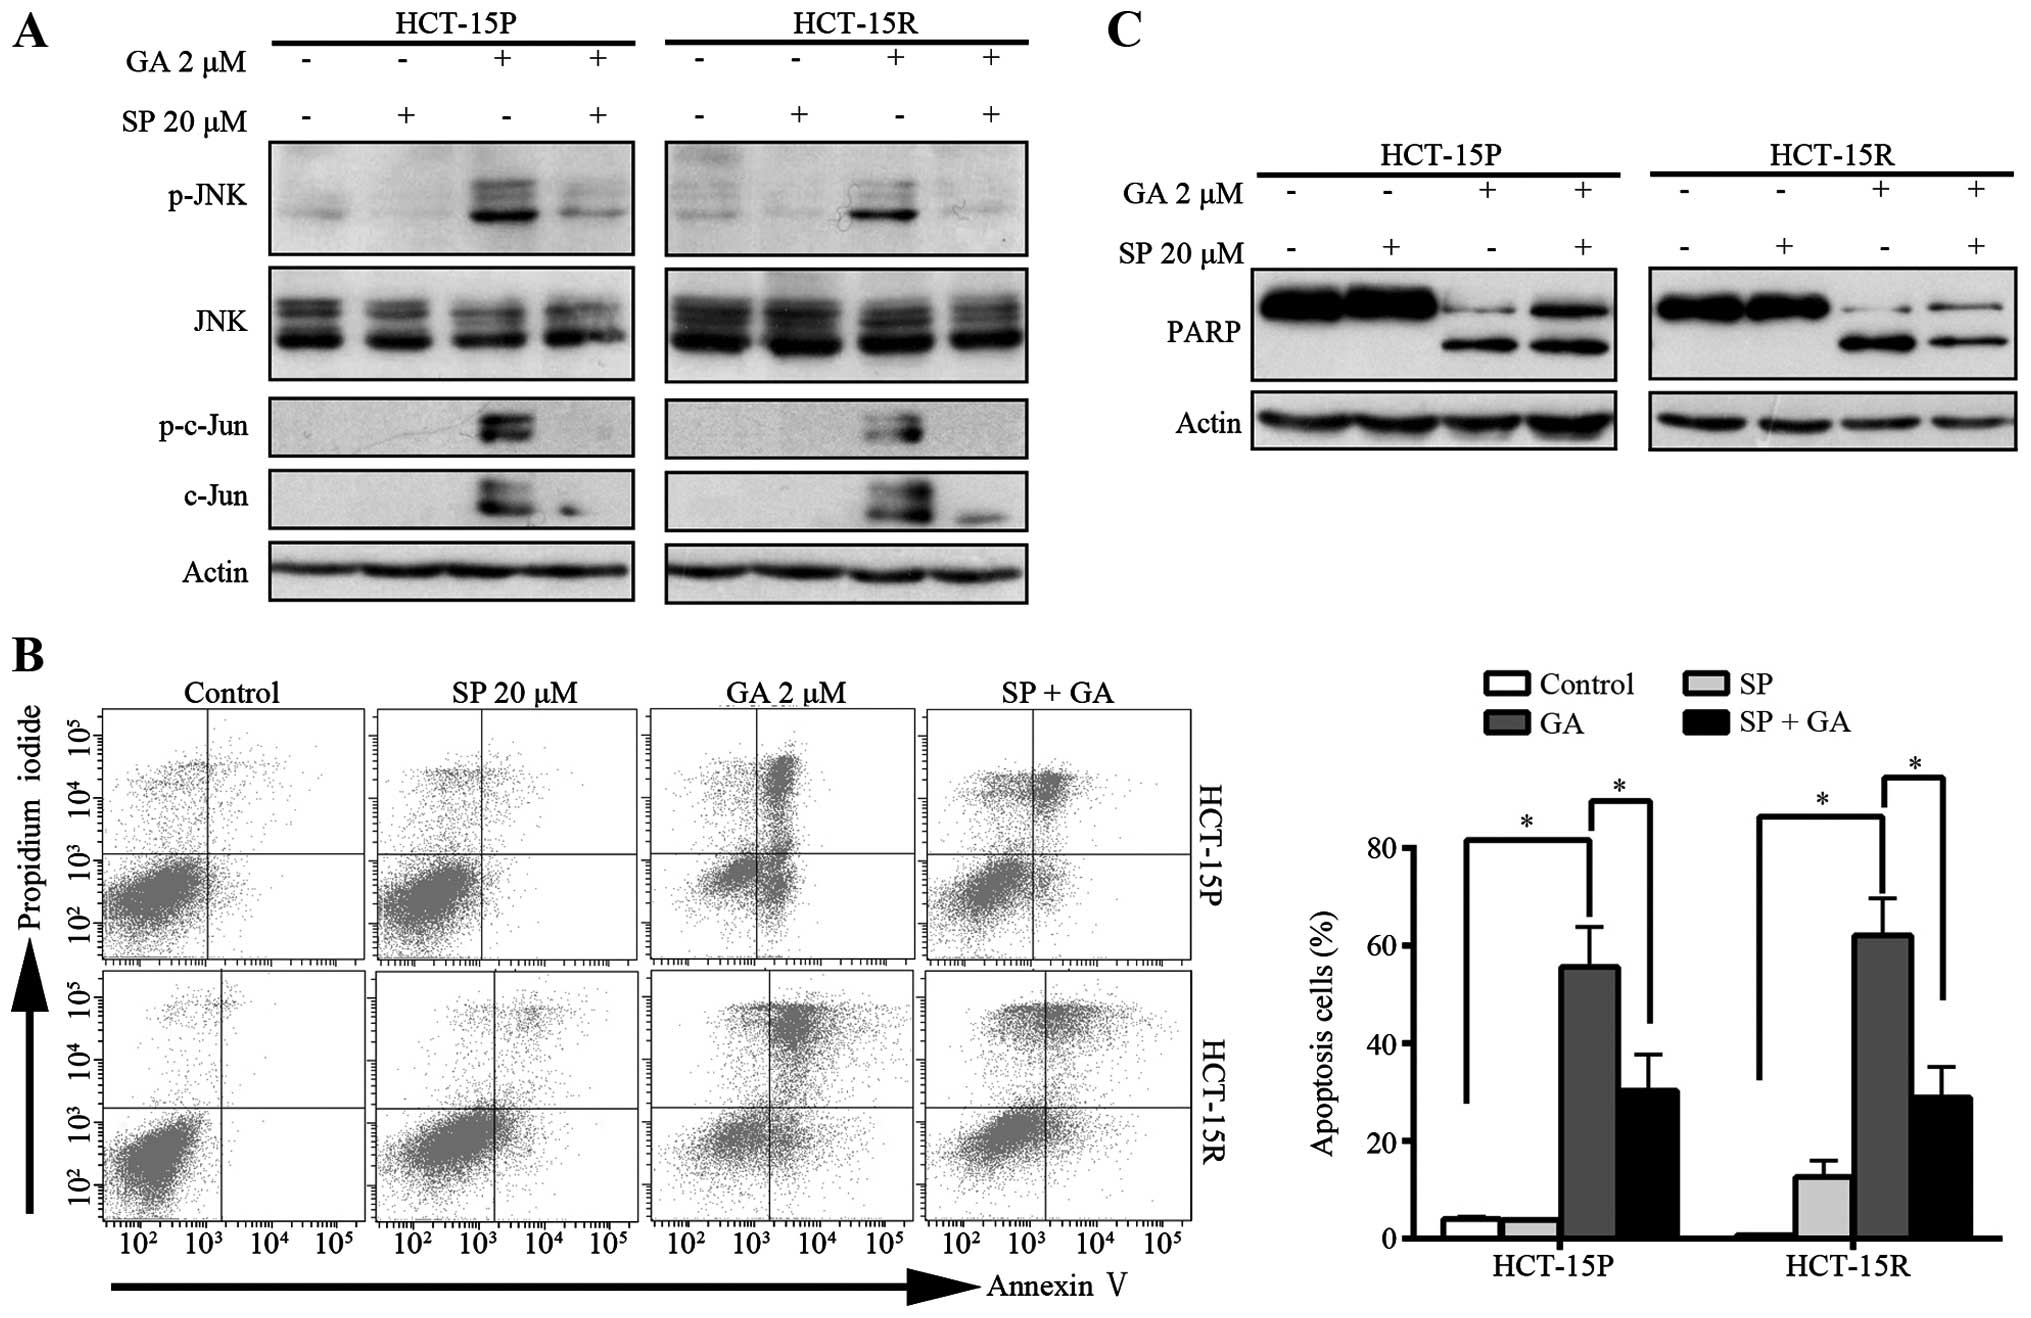 GA induces apoptosis in both GCB- and ABC-DLBCL cells. (A